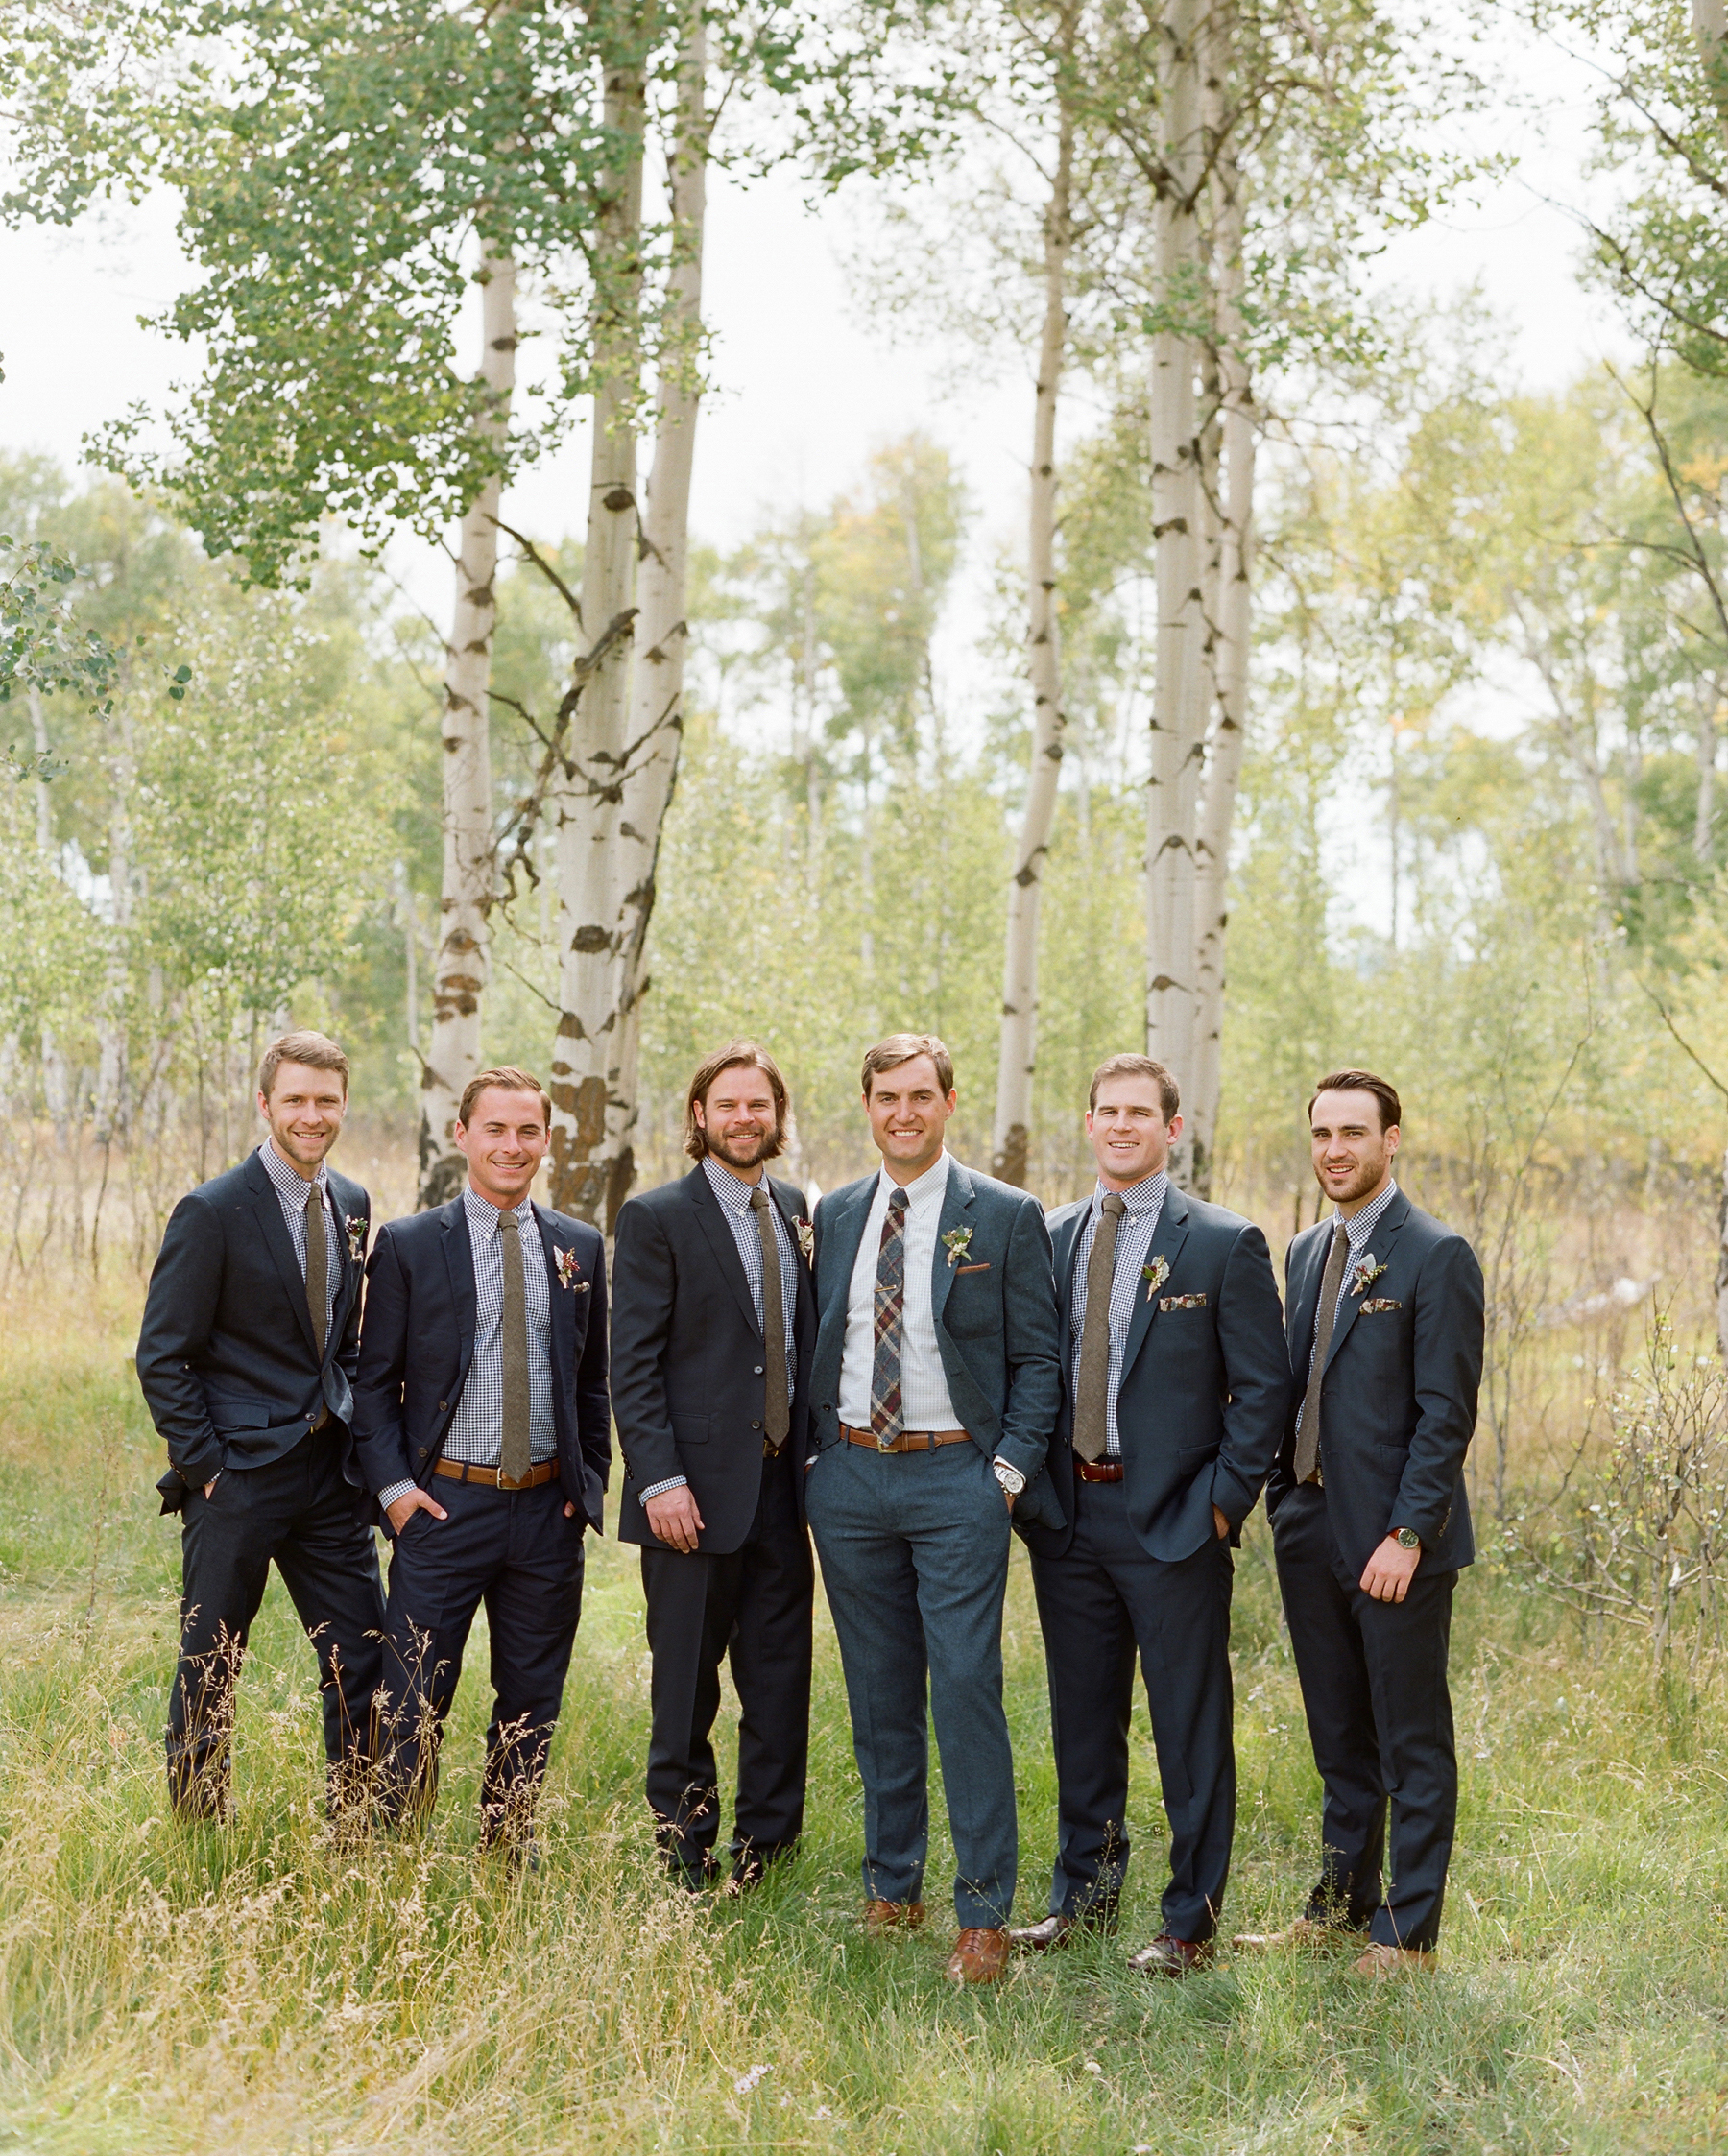 callie-eric-wedding-groomsmen-180-s112113-0815.jpg